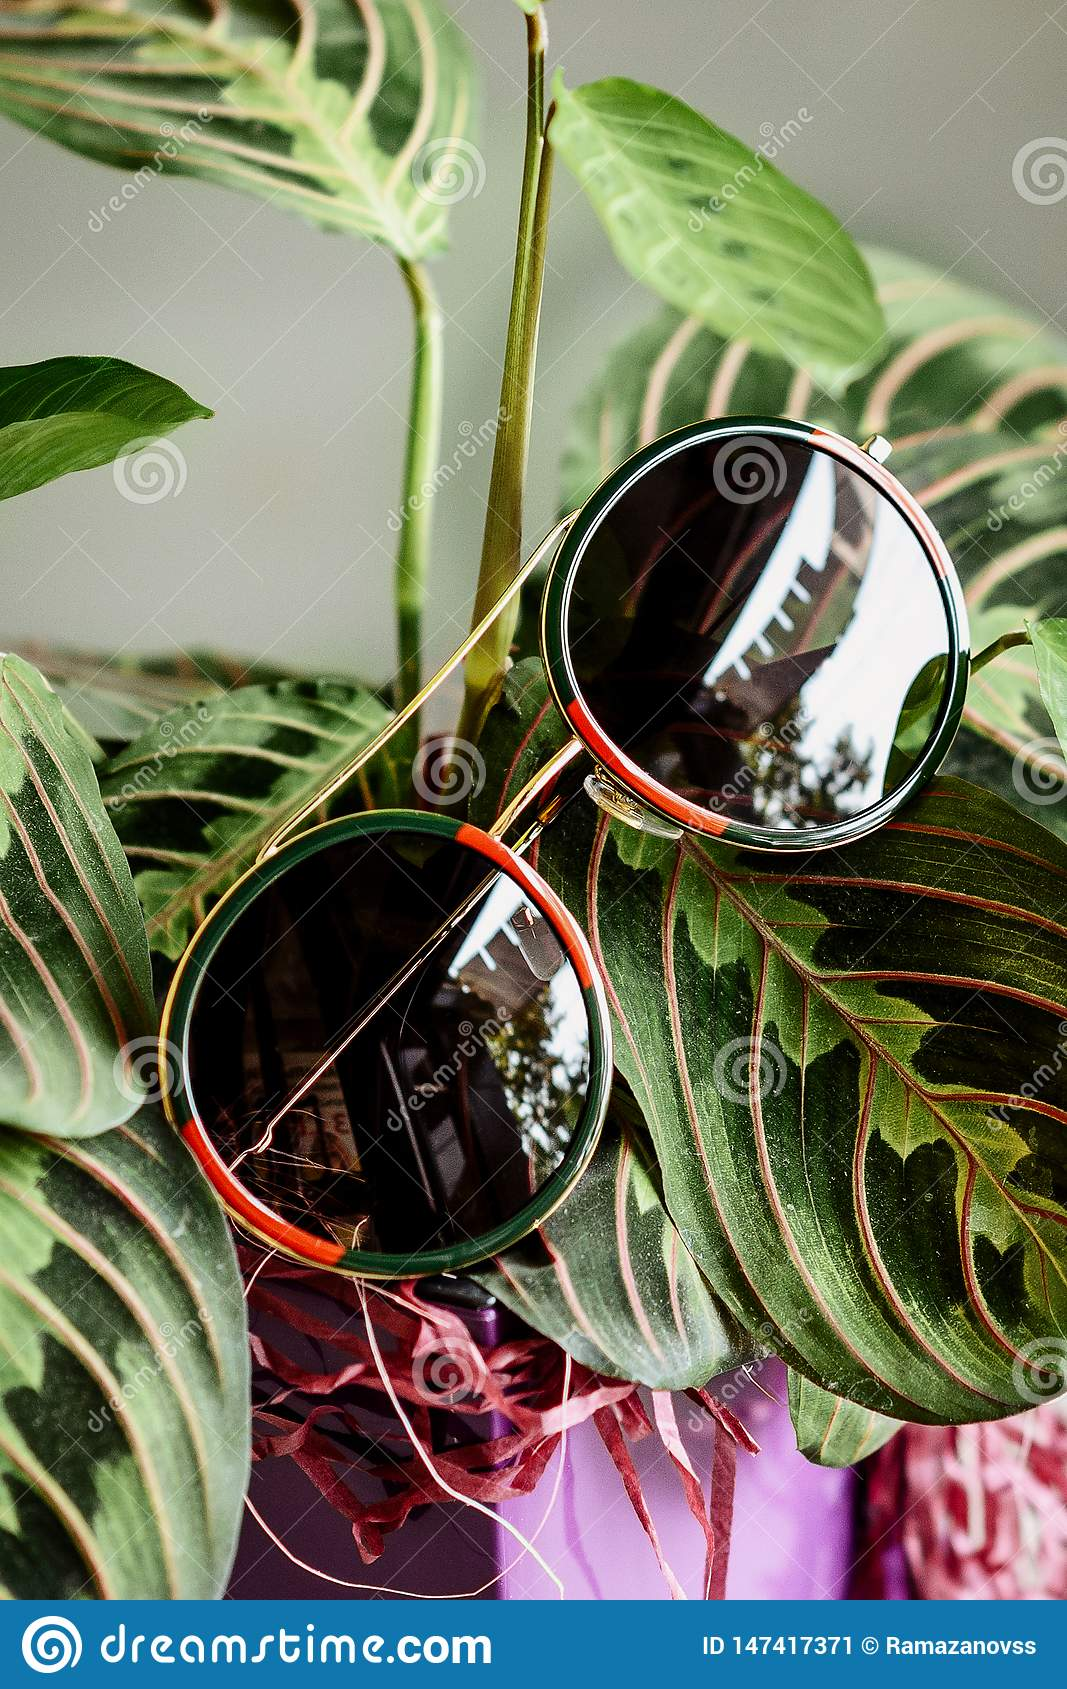 Glasses in a metallic red-green frame on the leaves of the plant